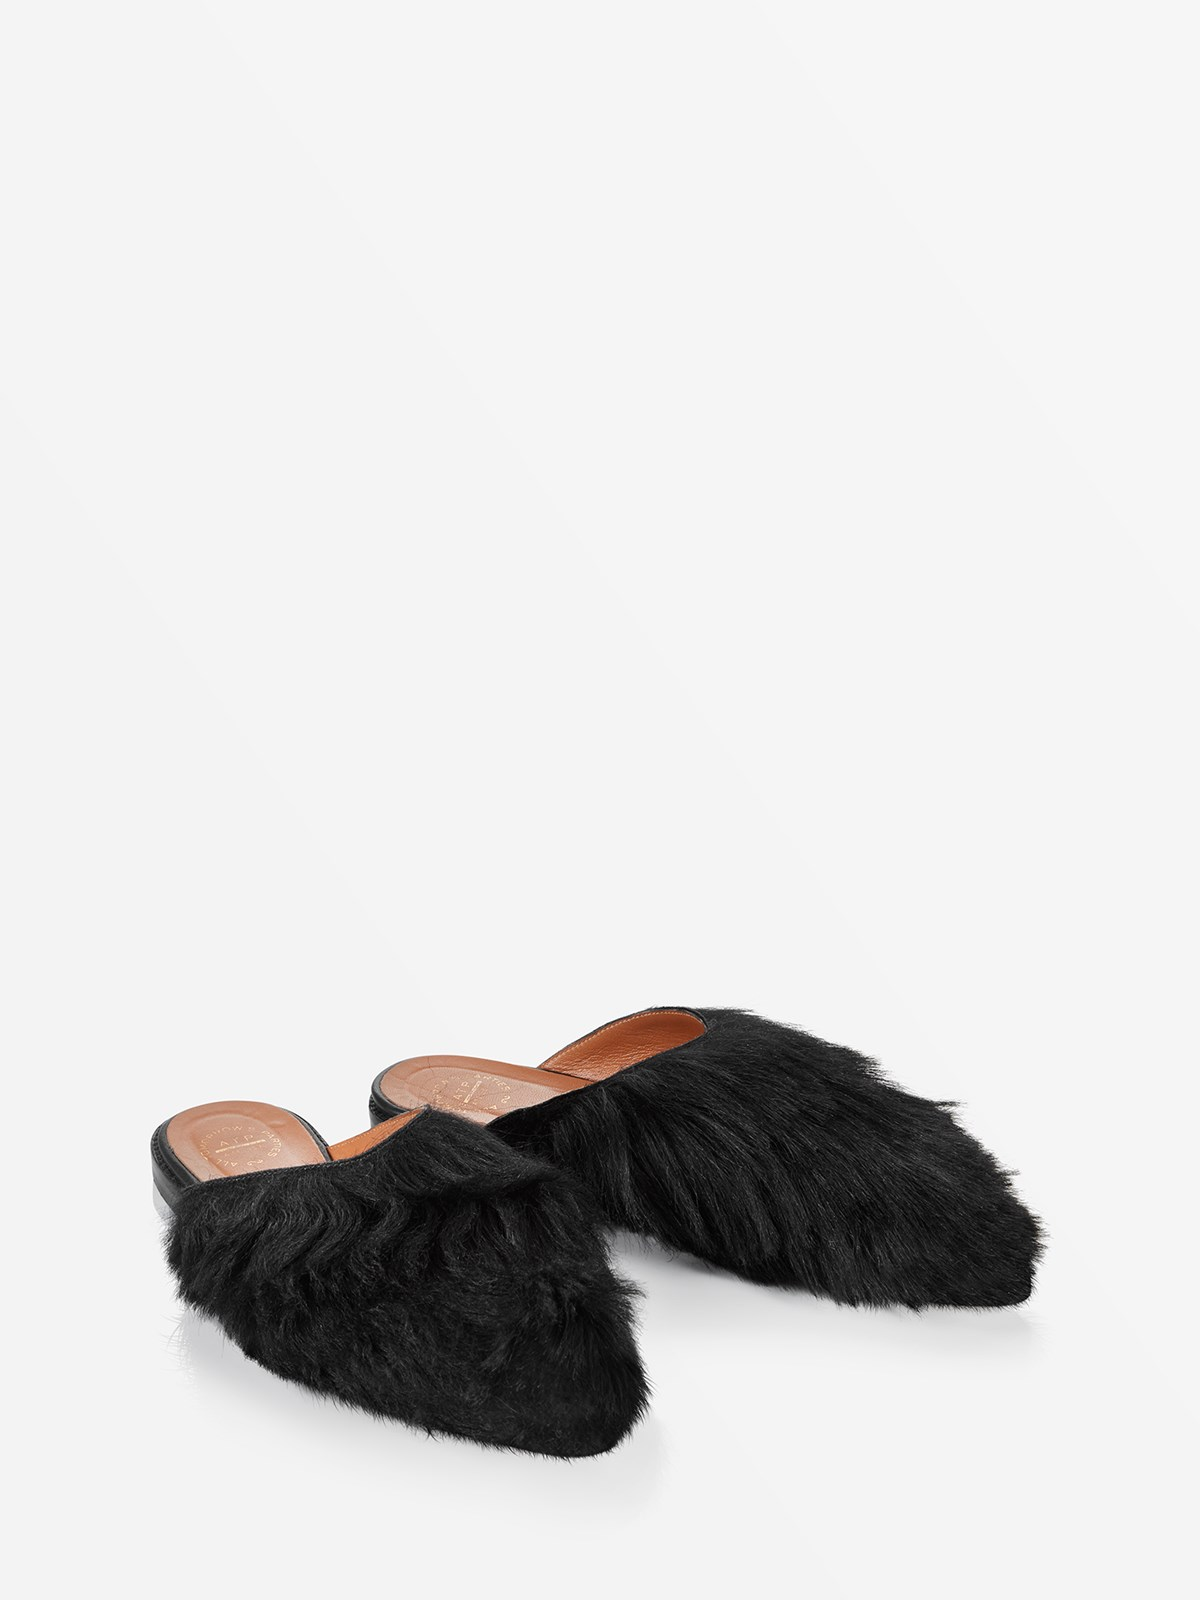 Fur Anzi Black Fur